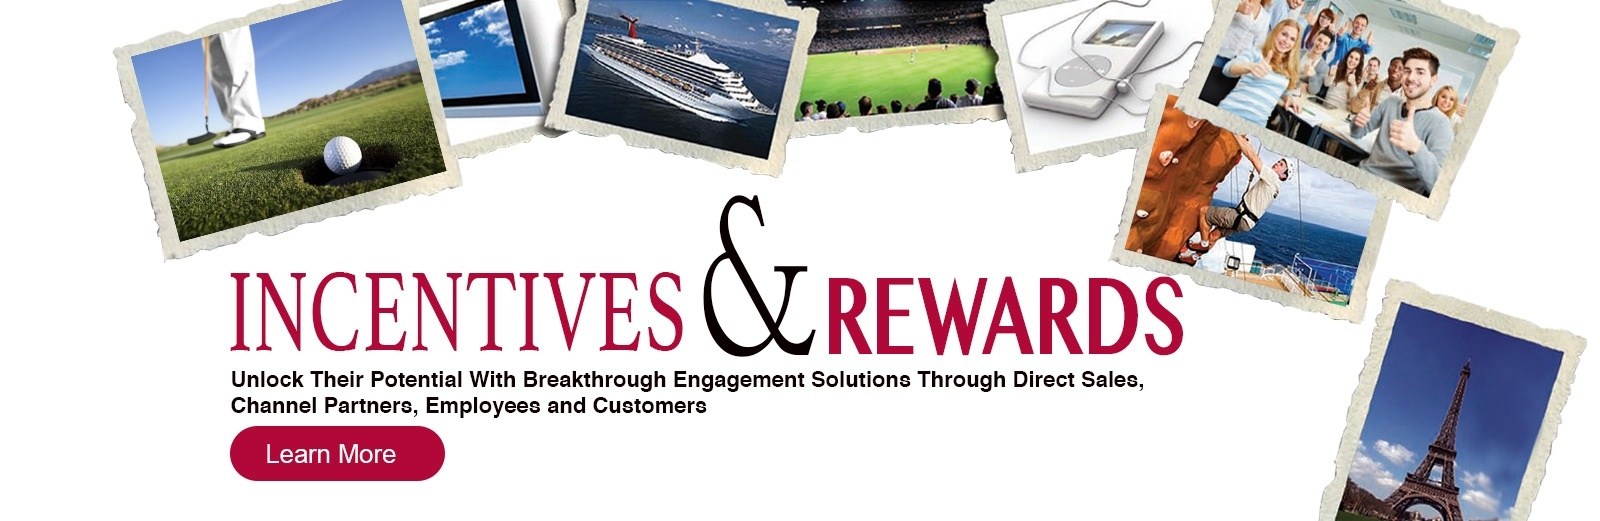 Incentives & Rewards